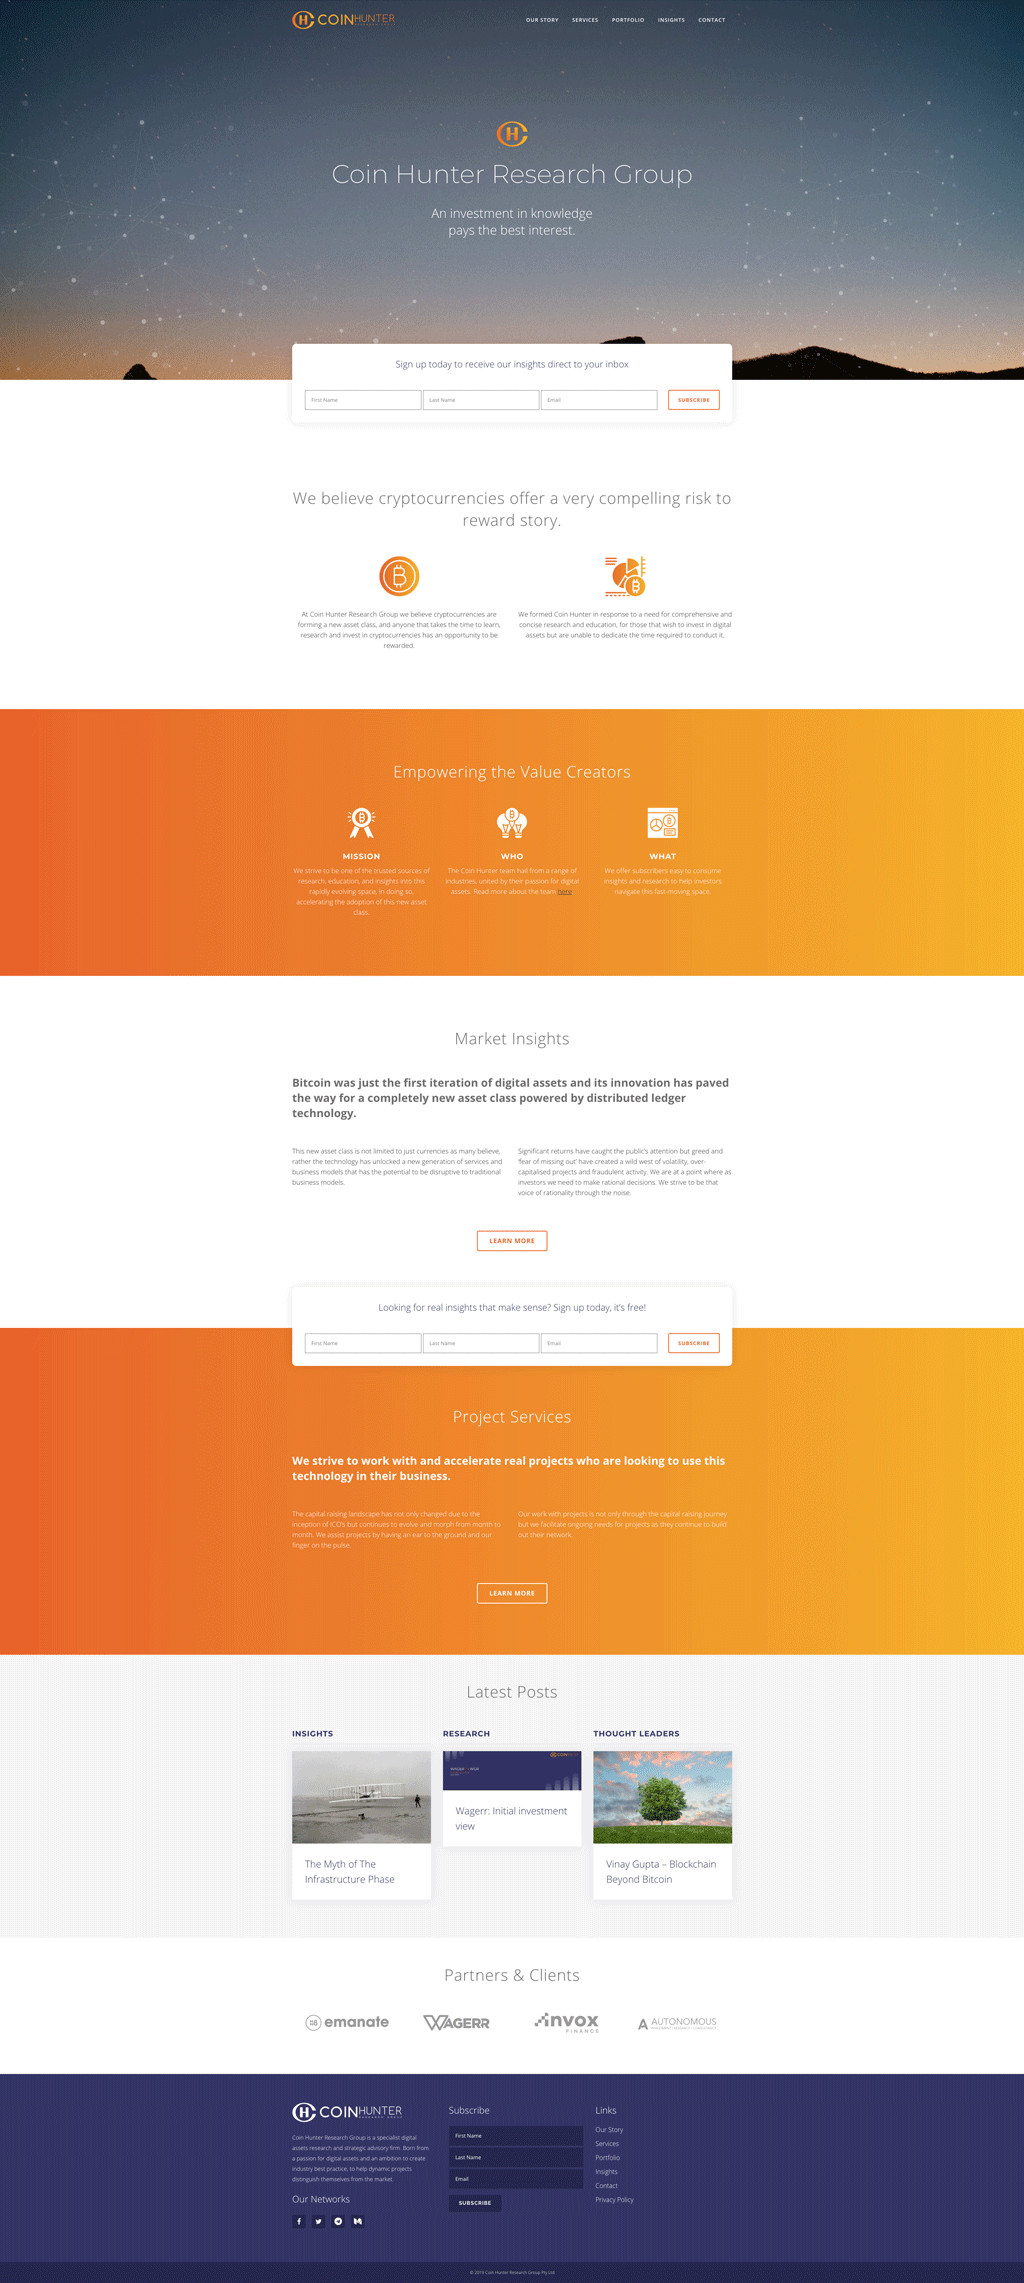 Coin Hunter Research Group Website Design